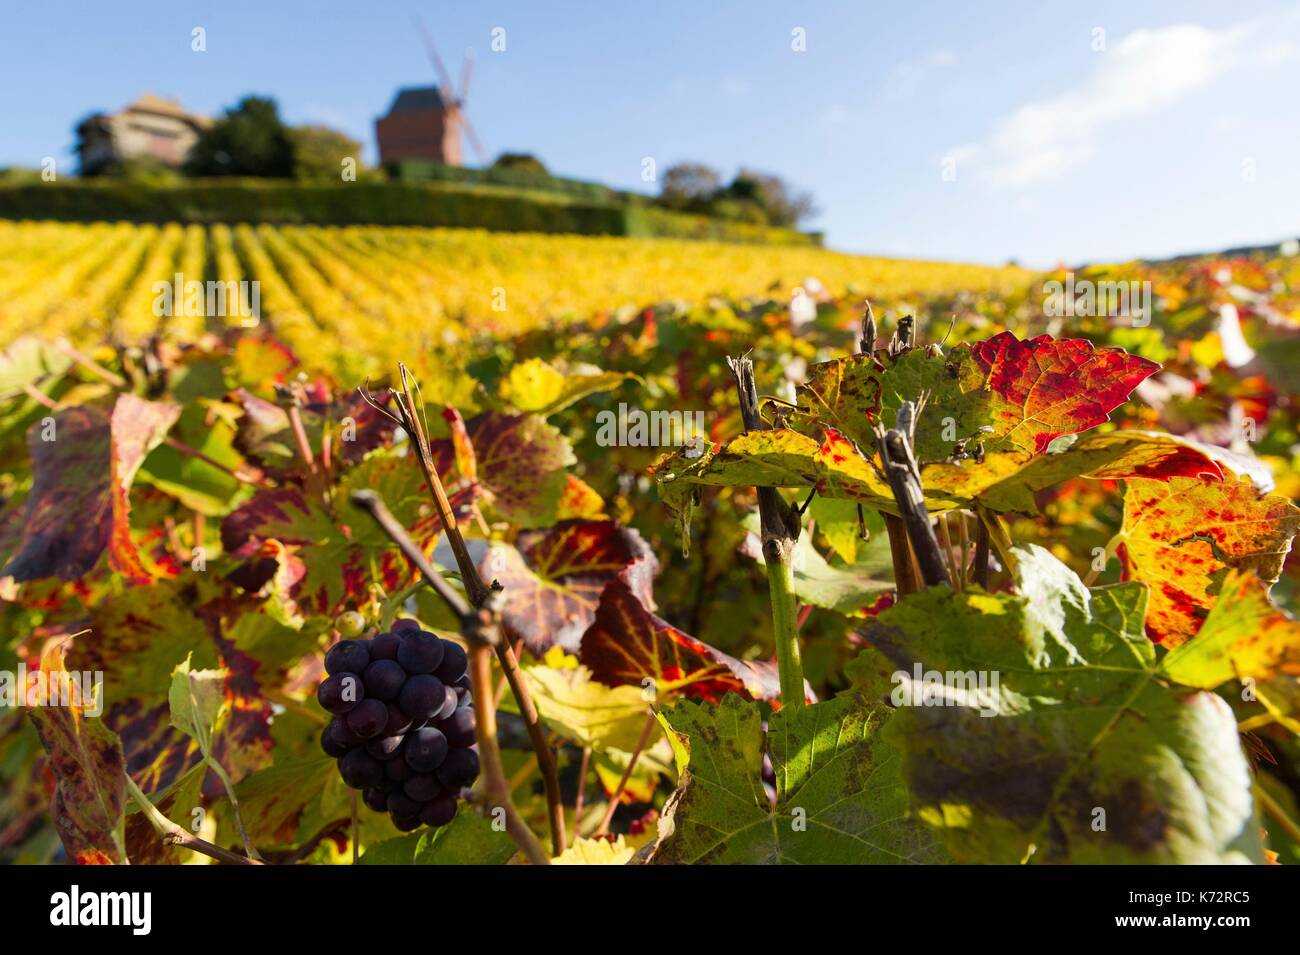 Mumm reims stock photos mumm reims stock images alamy for Champagne marne